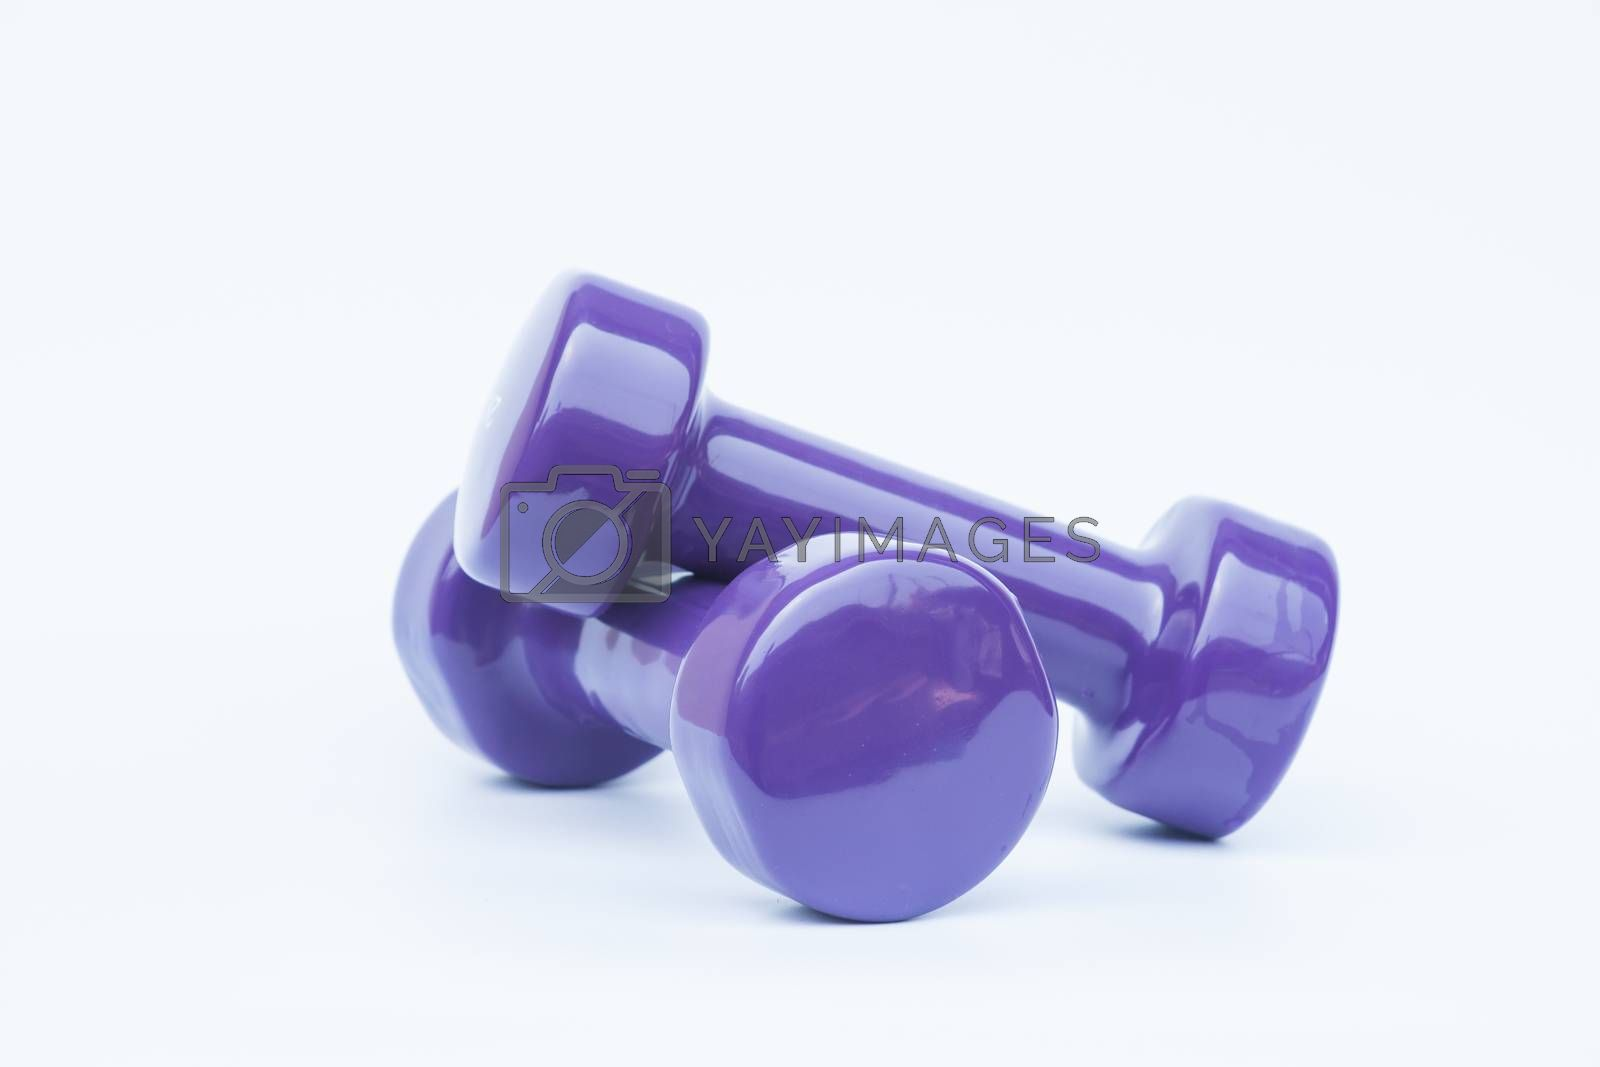 Dumbbell weights isolated on white background by punsayaporn